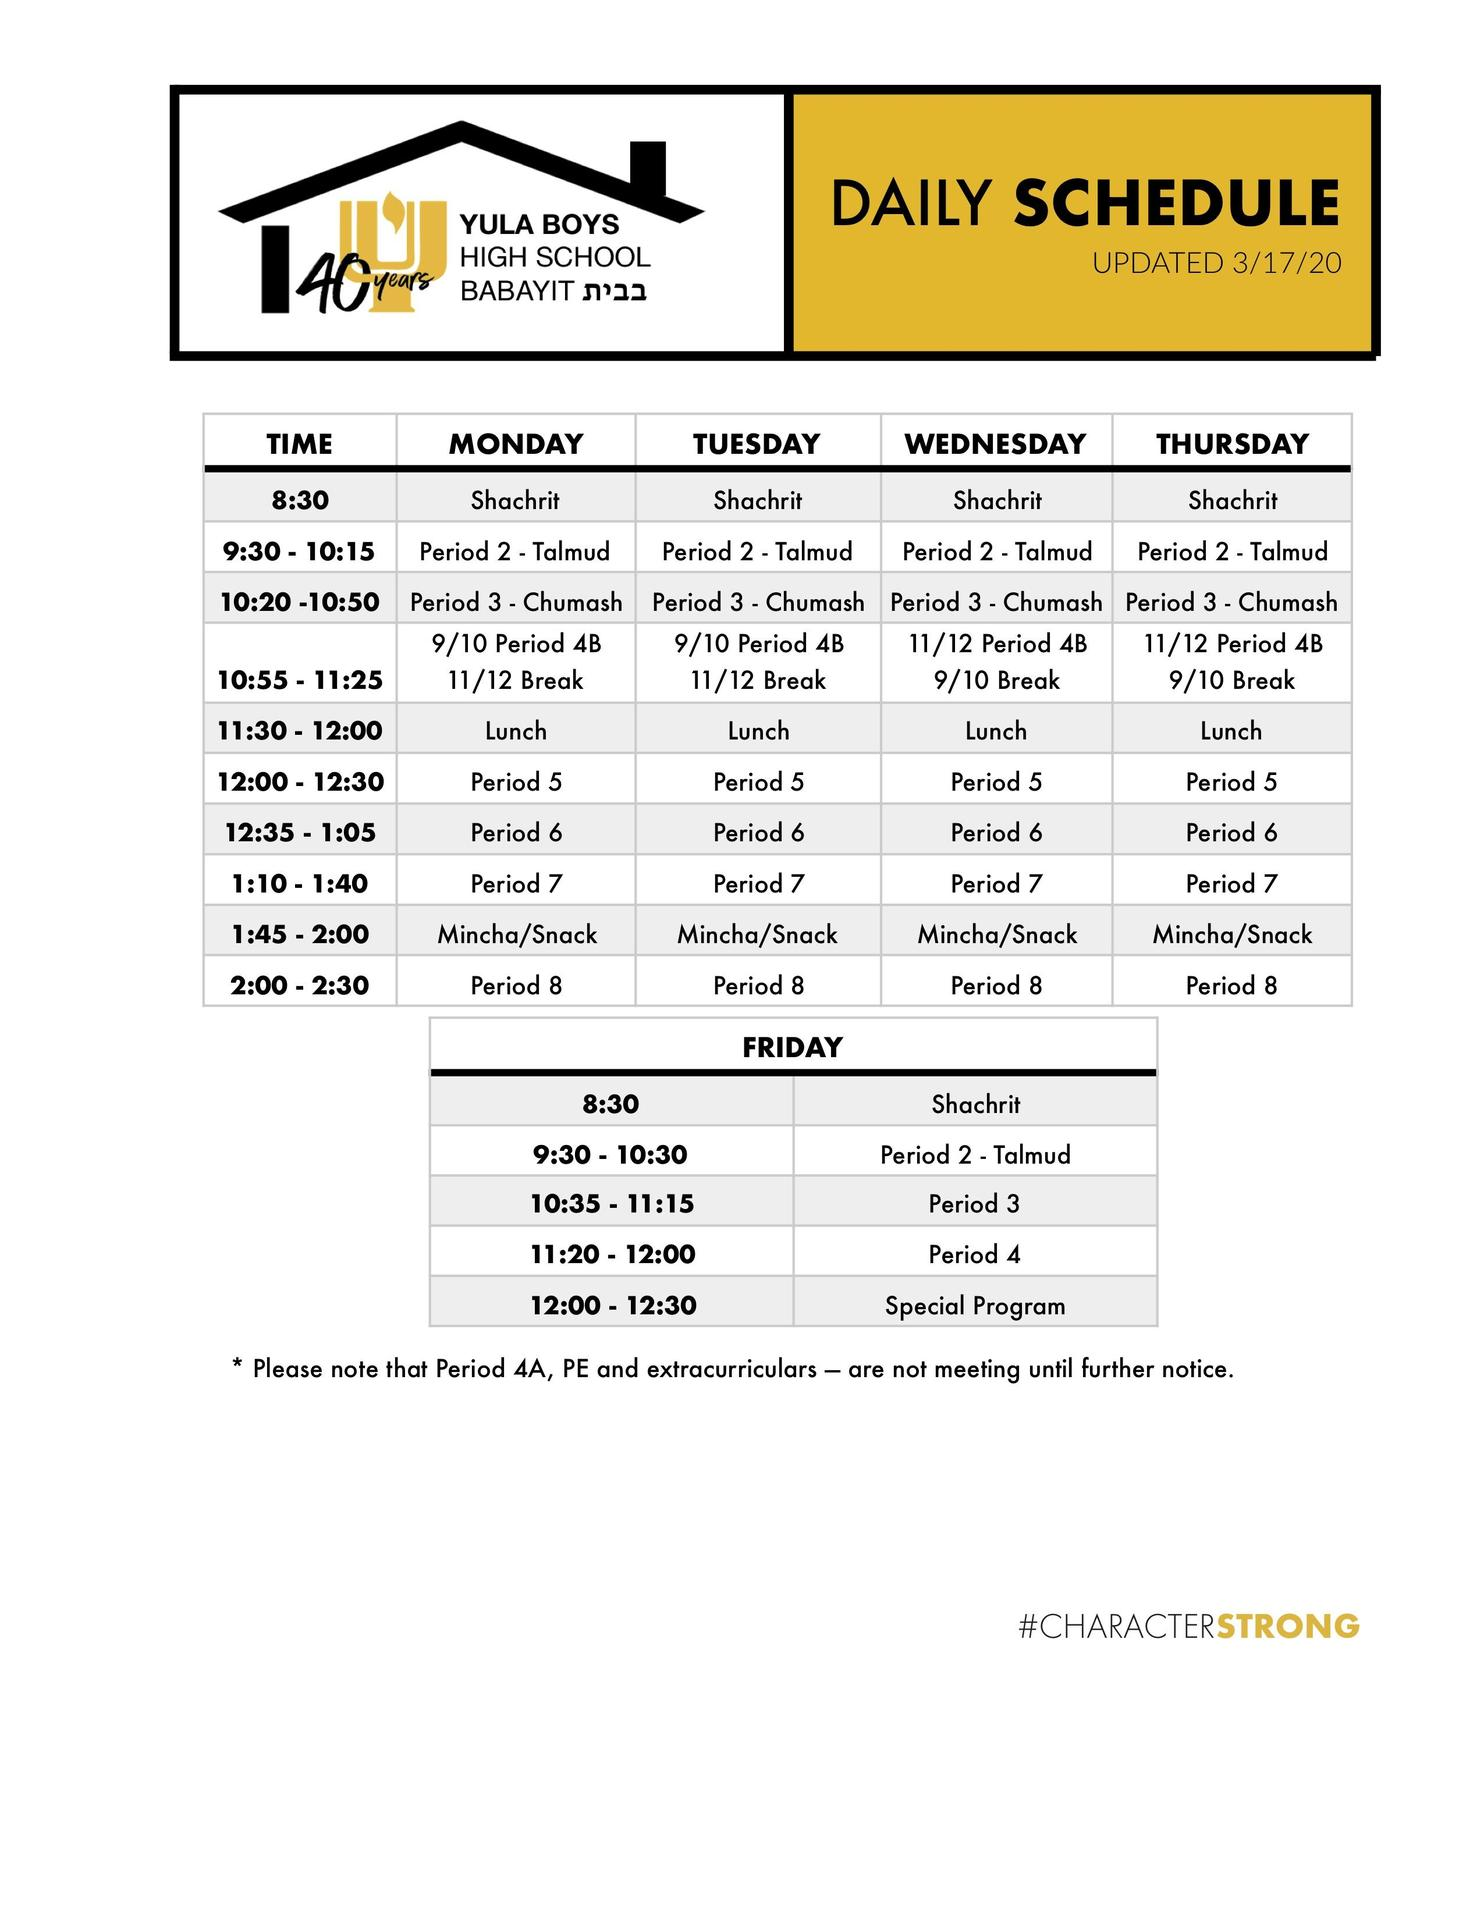 Babayit Schedule